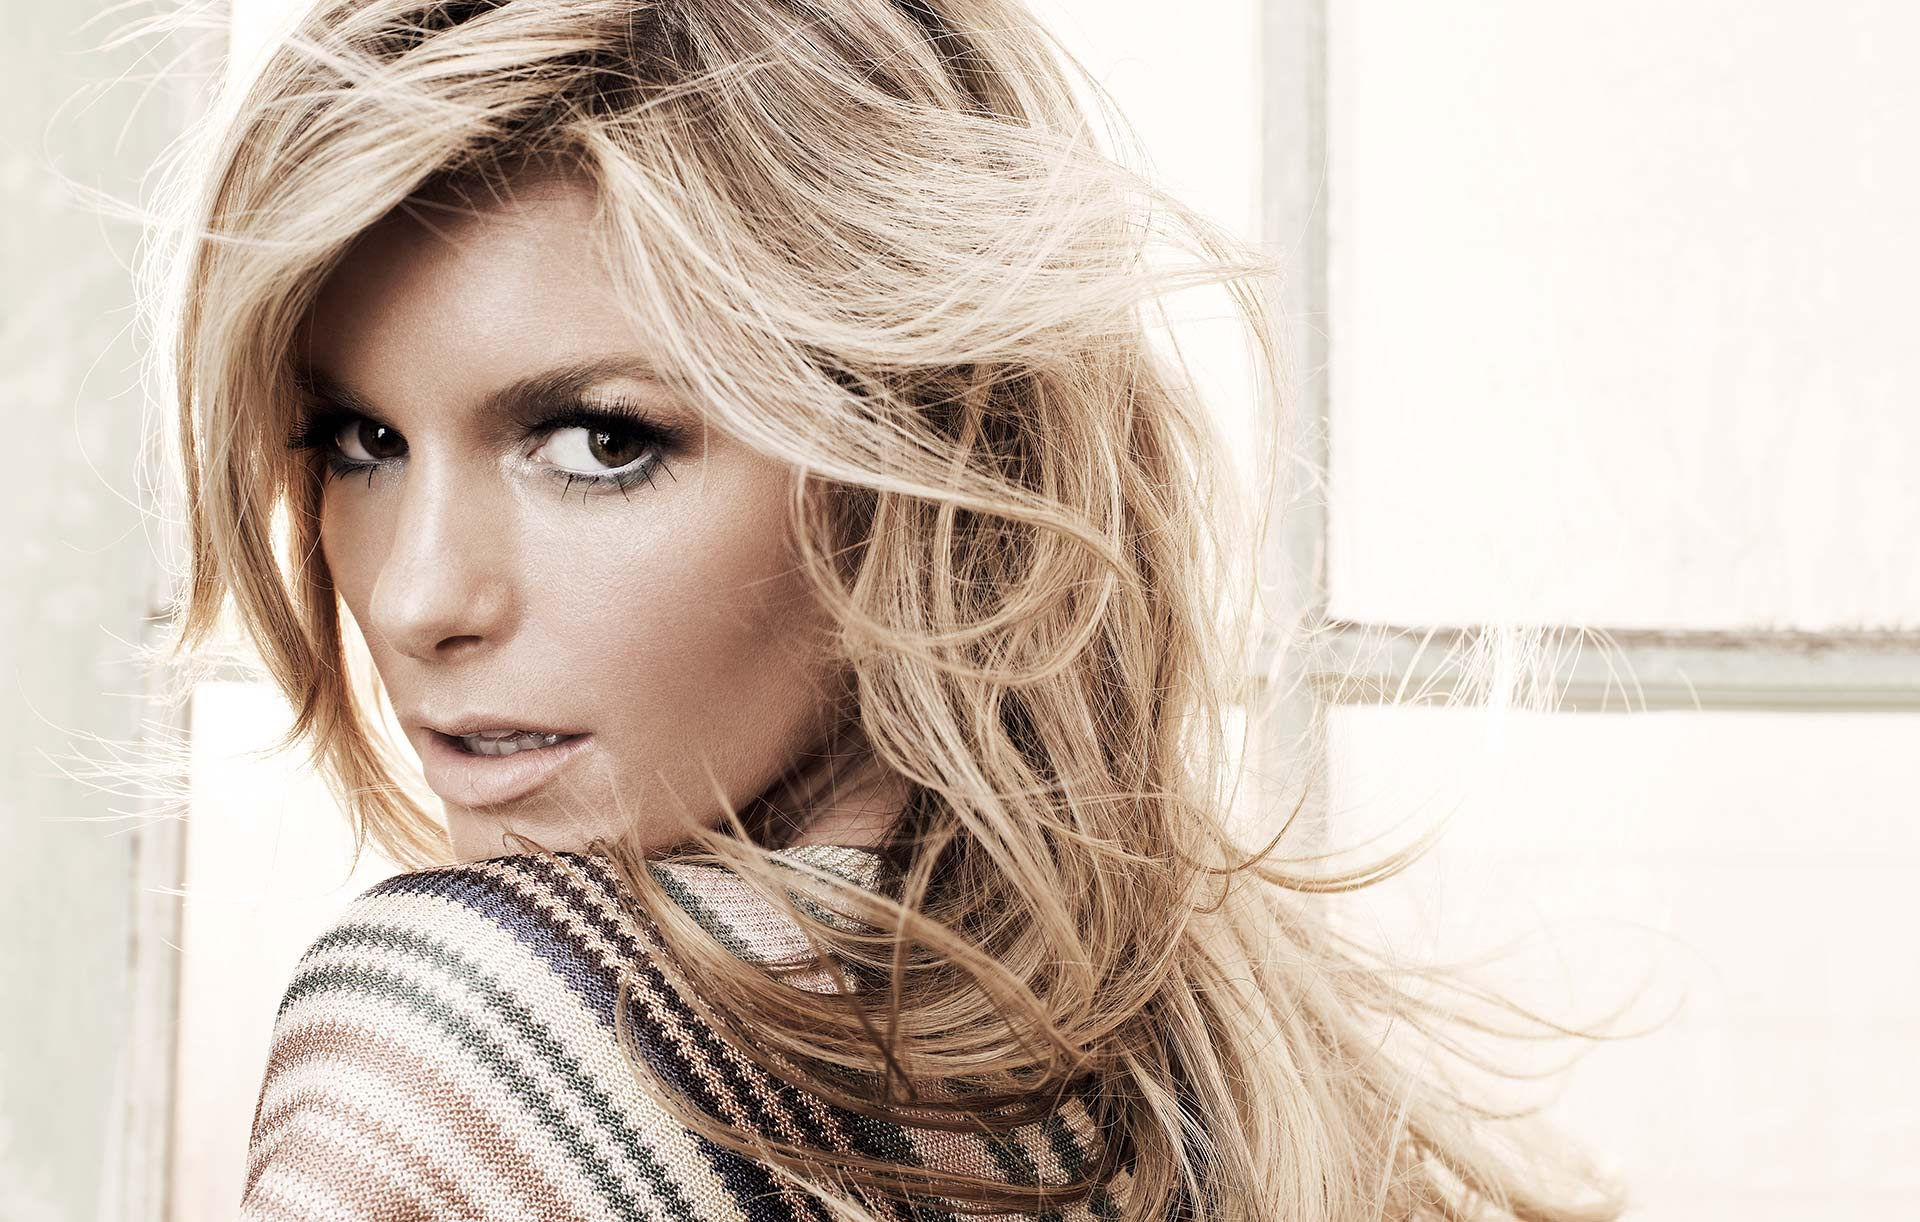 Marisa Miller Face Wallpapers - Marisa Miller Face Wallpapers